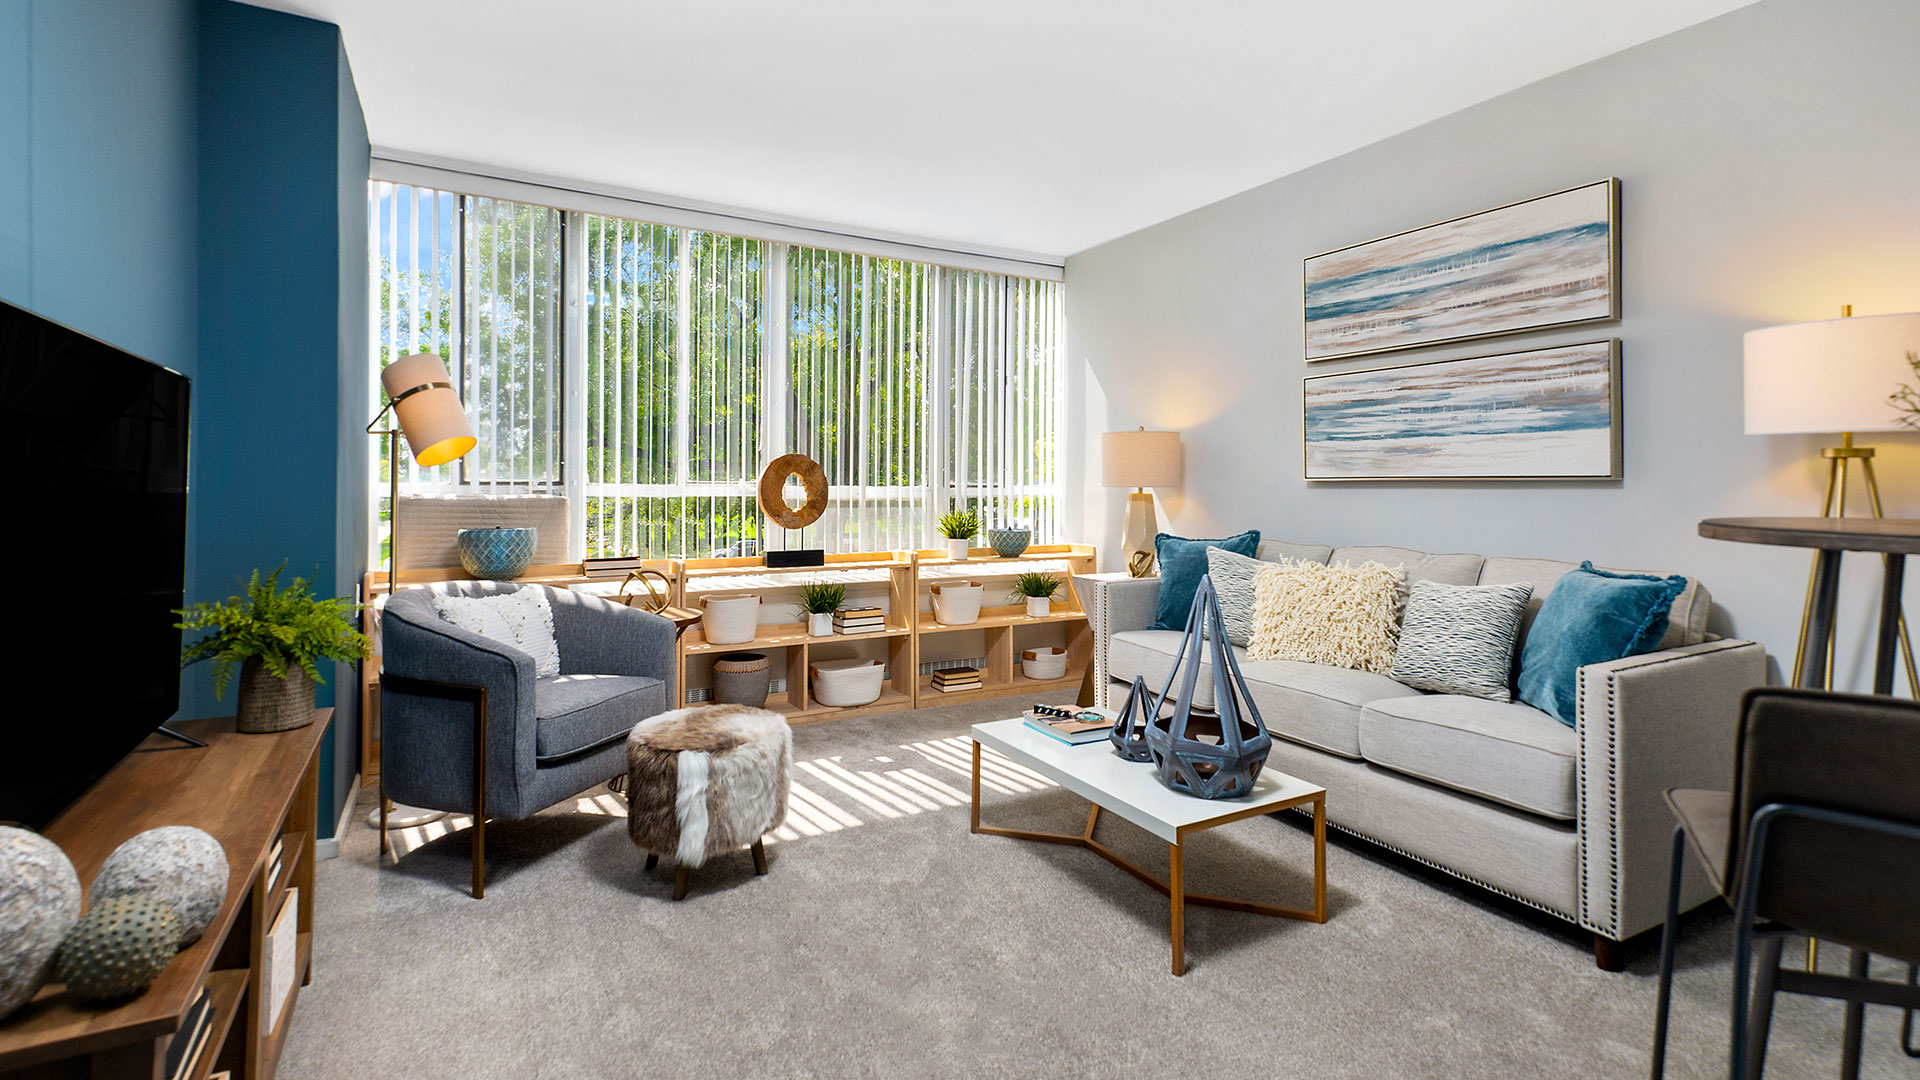 A living room in a 1-bedroom residence at Lake Meadows. A couch and coffee table are along the right wall with a chair and television opposite. Trees and blue sky can bee seen out the window.